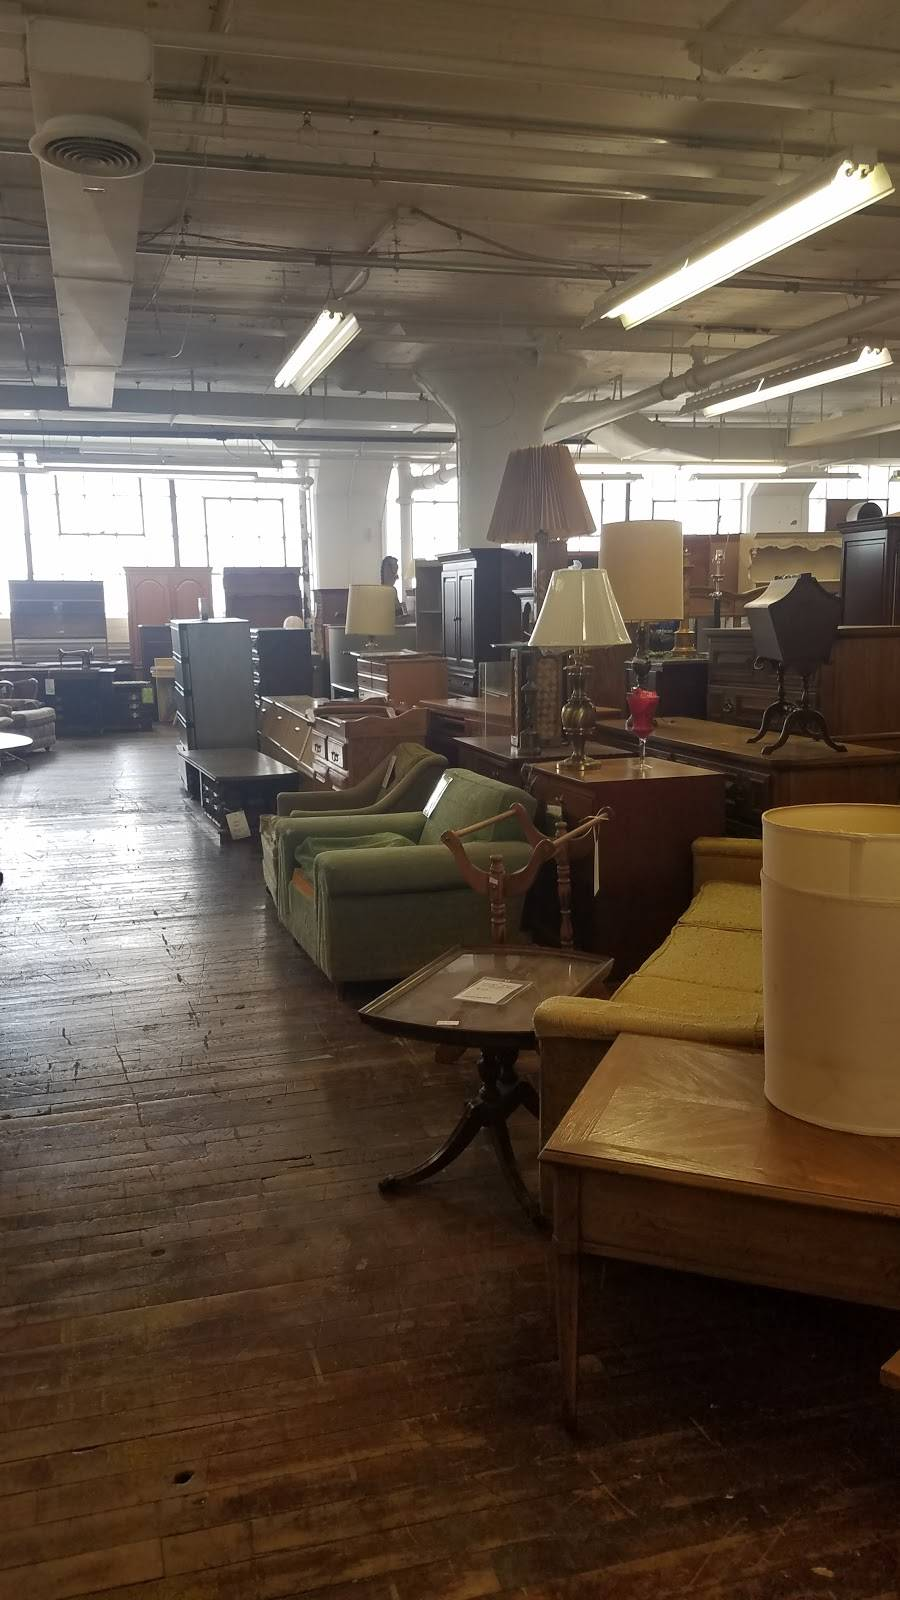 VNTG Home - furniture store  | Photo 3 of 10 | Address: 1235 Marquette St #1, Cleveland, OH 44118, USA | Phone: (216) 505-4322